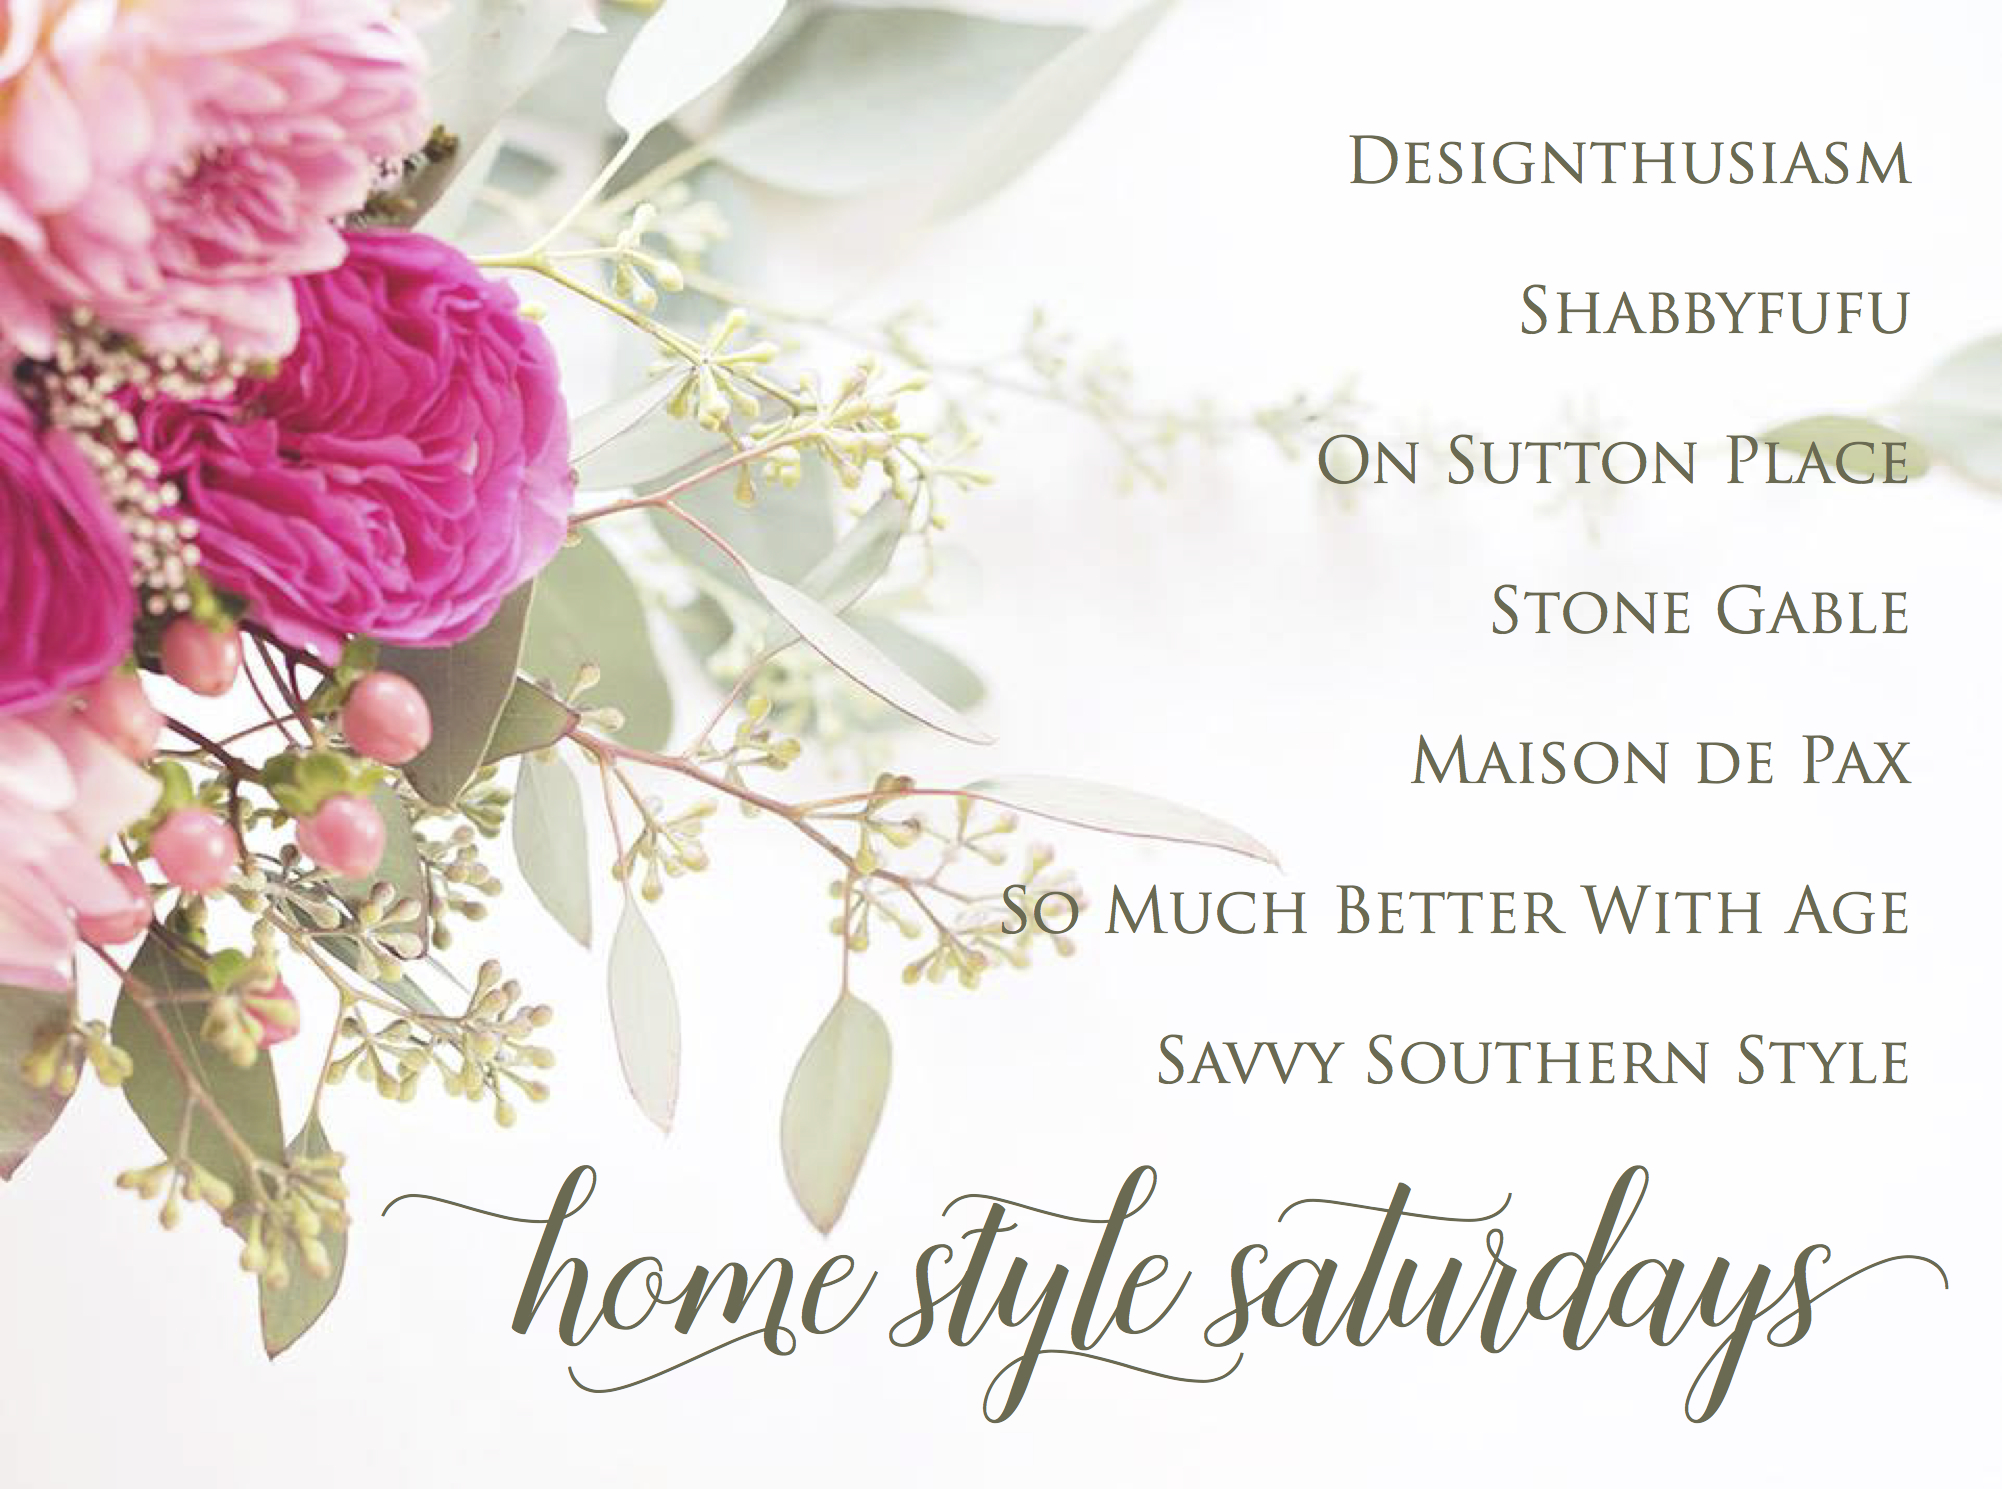 Home Style Saturdays - So Much Better With Age